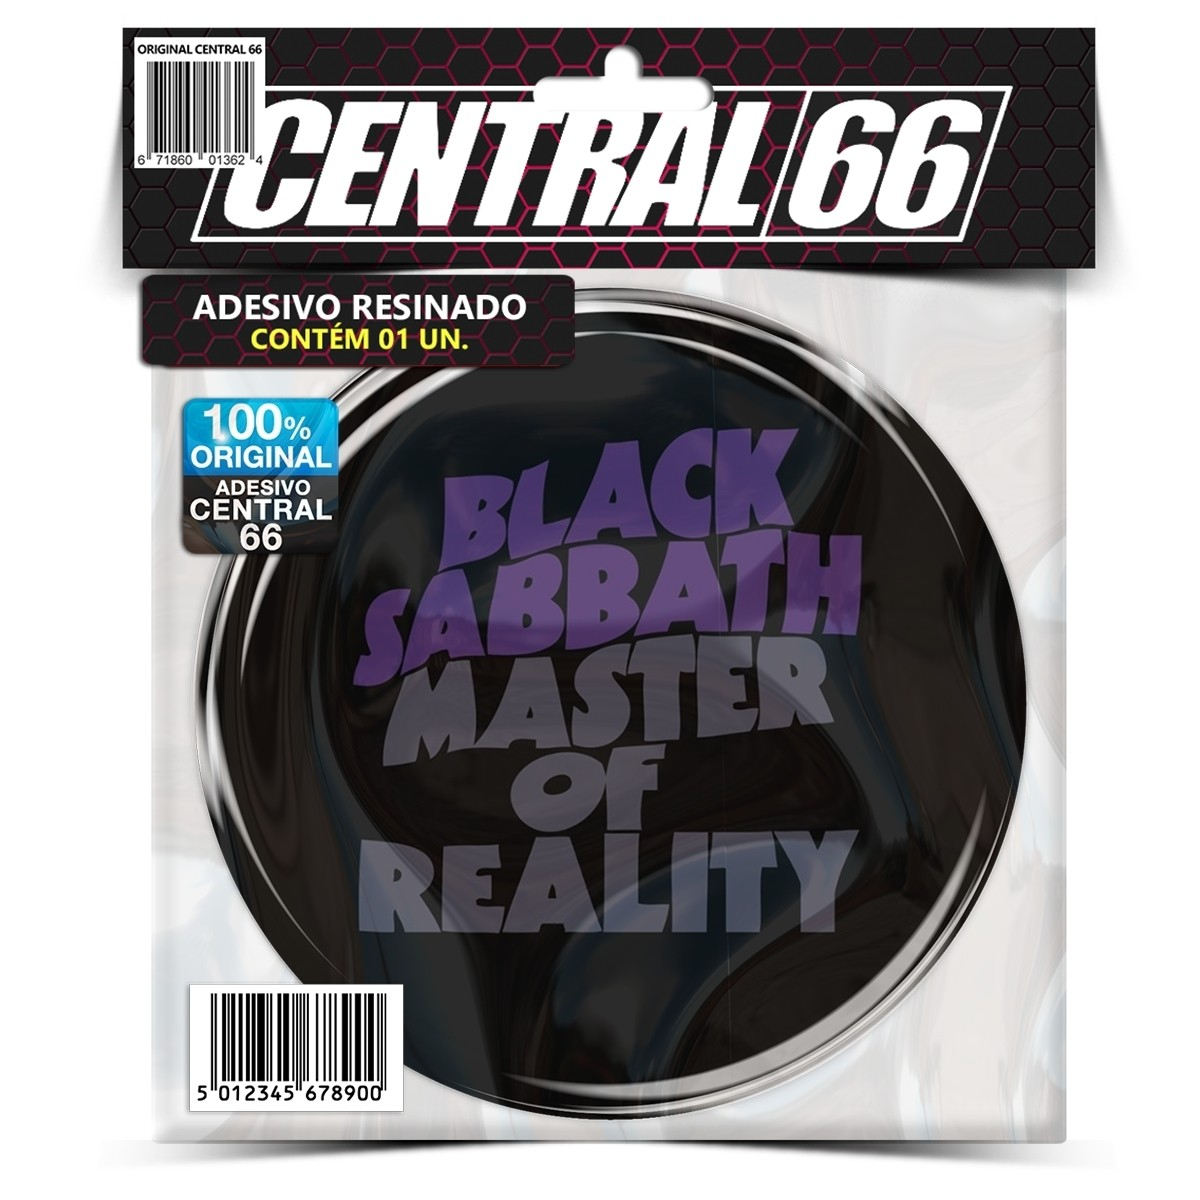 Adesivo Redondo Black Sabbath Master of Reallity – Central 66